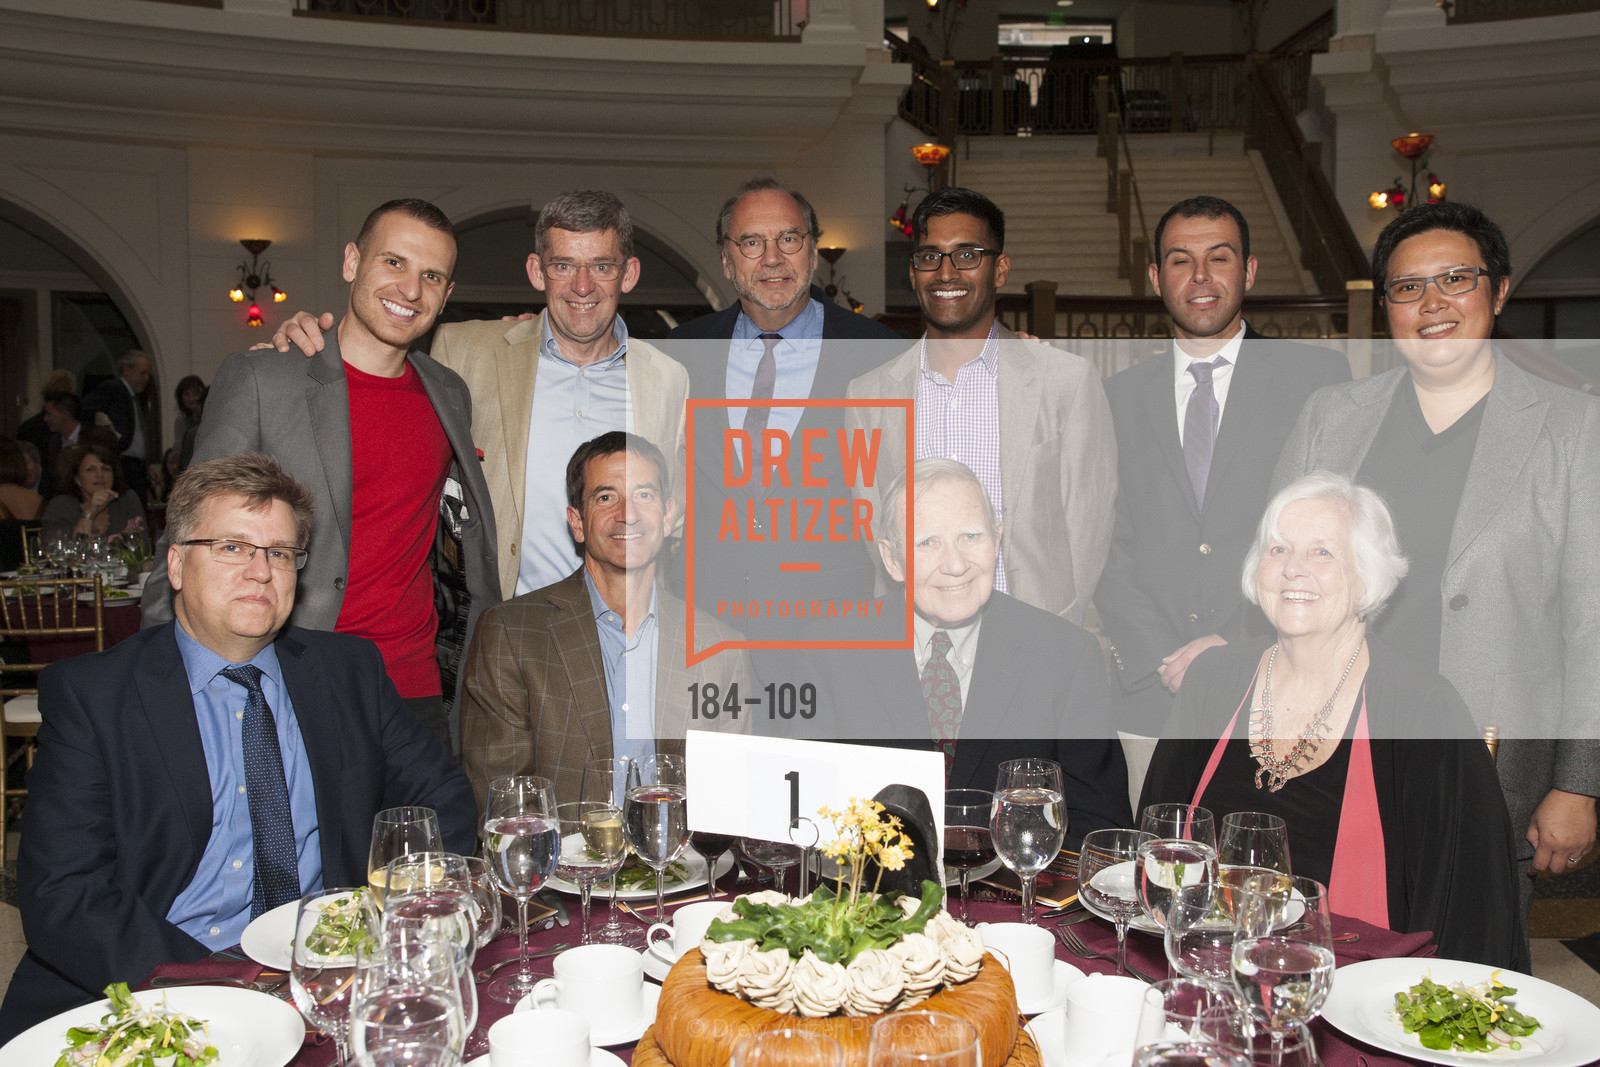 Bill Friar, Korab Duka, David Piontkowsky, Gregg Alton, Peter Piot, Anand Reddi, Jirair Ratevosian, Myra Ozaeta, PANGAEA GLOBAL HEALTH Leadership Dinner at Rotunda in Oakland, The Rotunda. Oakland, May 11th, 2015,Drew Altizer, Drew Altizer Photography, full-service agency, private events, San Francisco photographer, photographer california